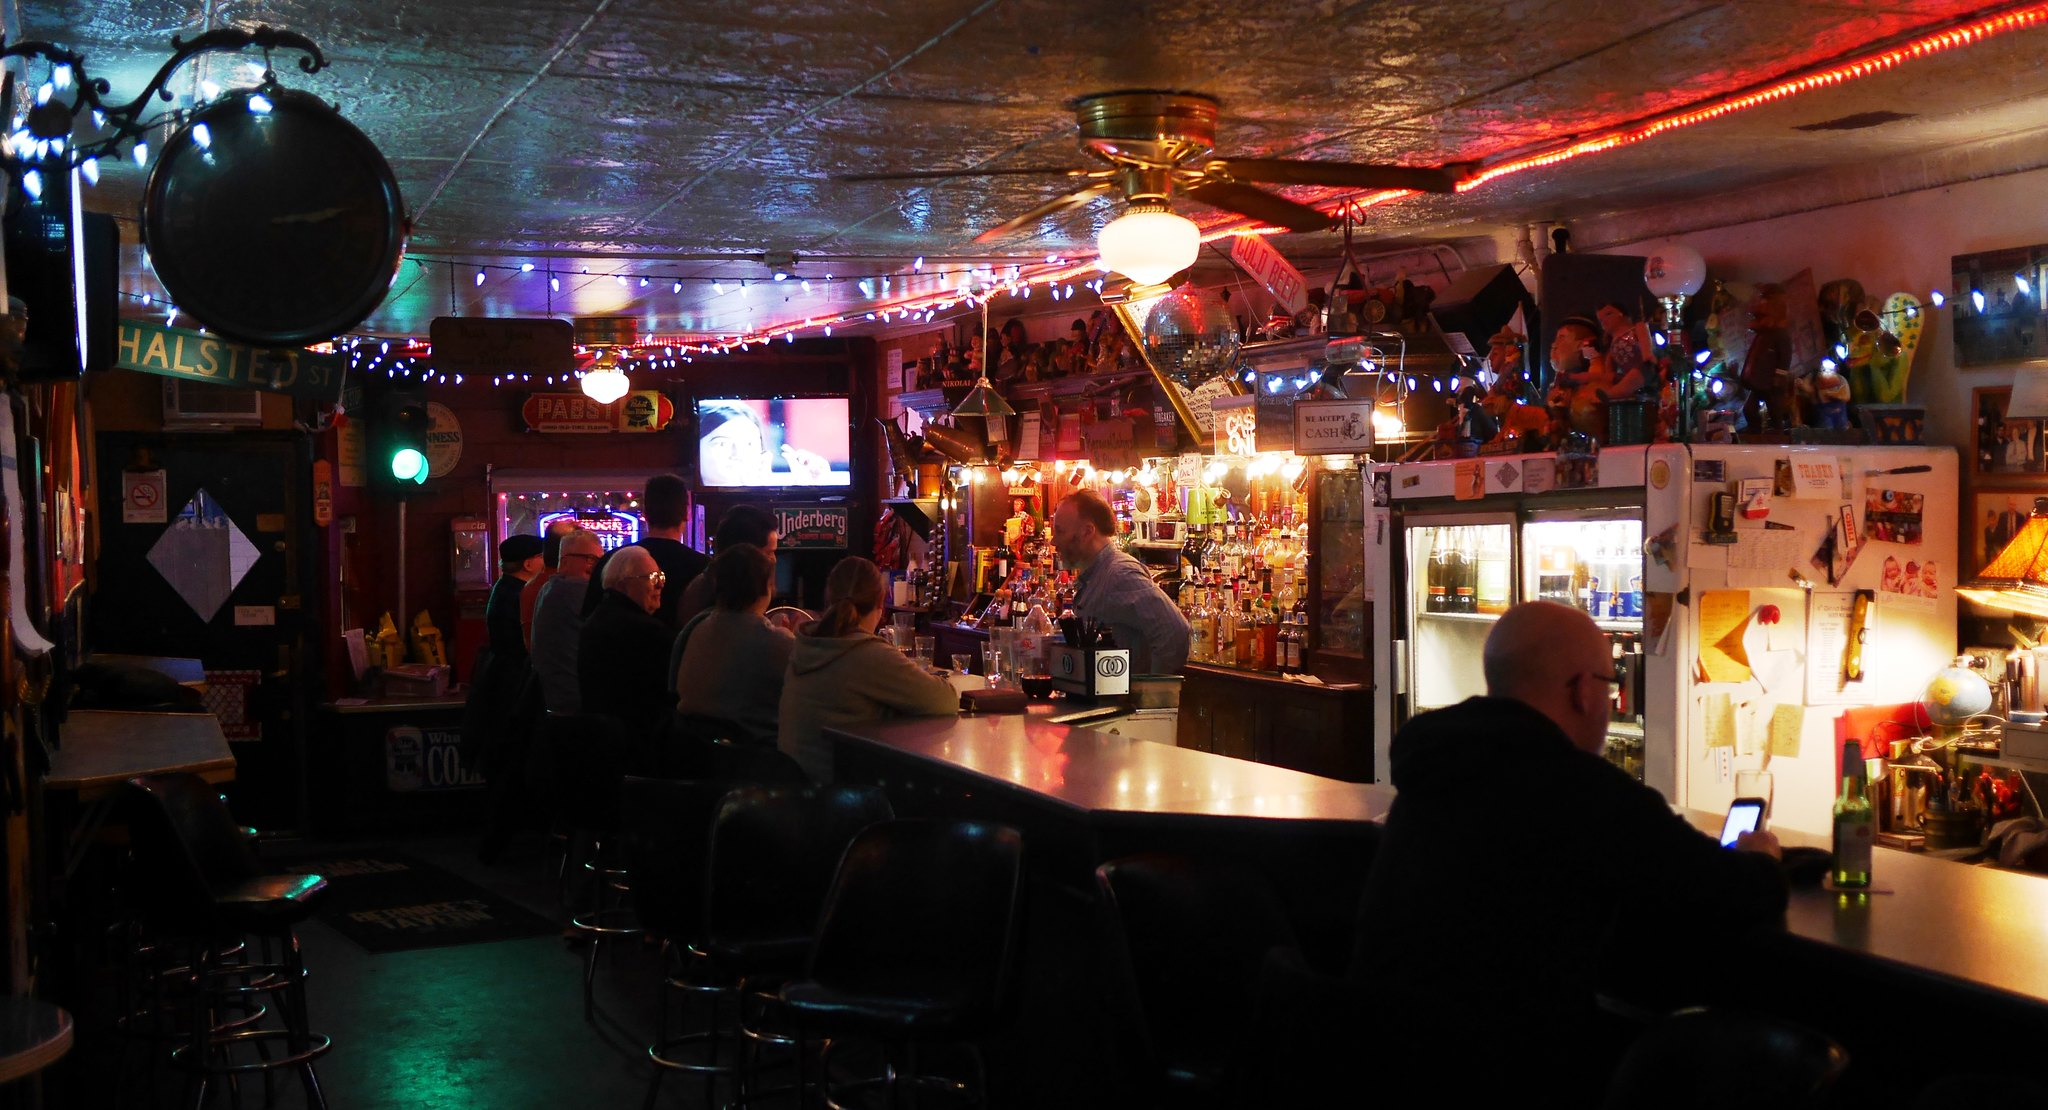 A dimly lit dive bar with folks sitting on stools at a wooden bar, with light illuminating the liquor bottles.